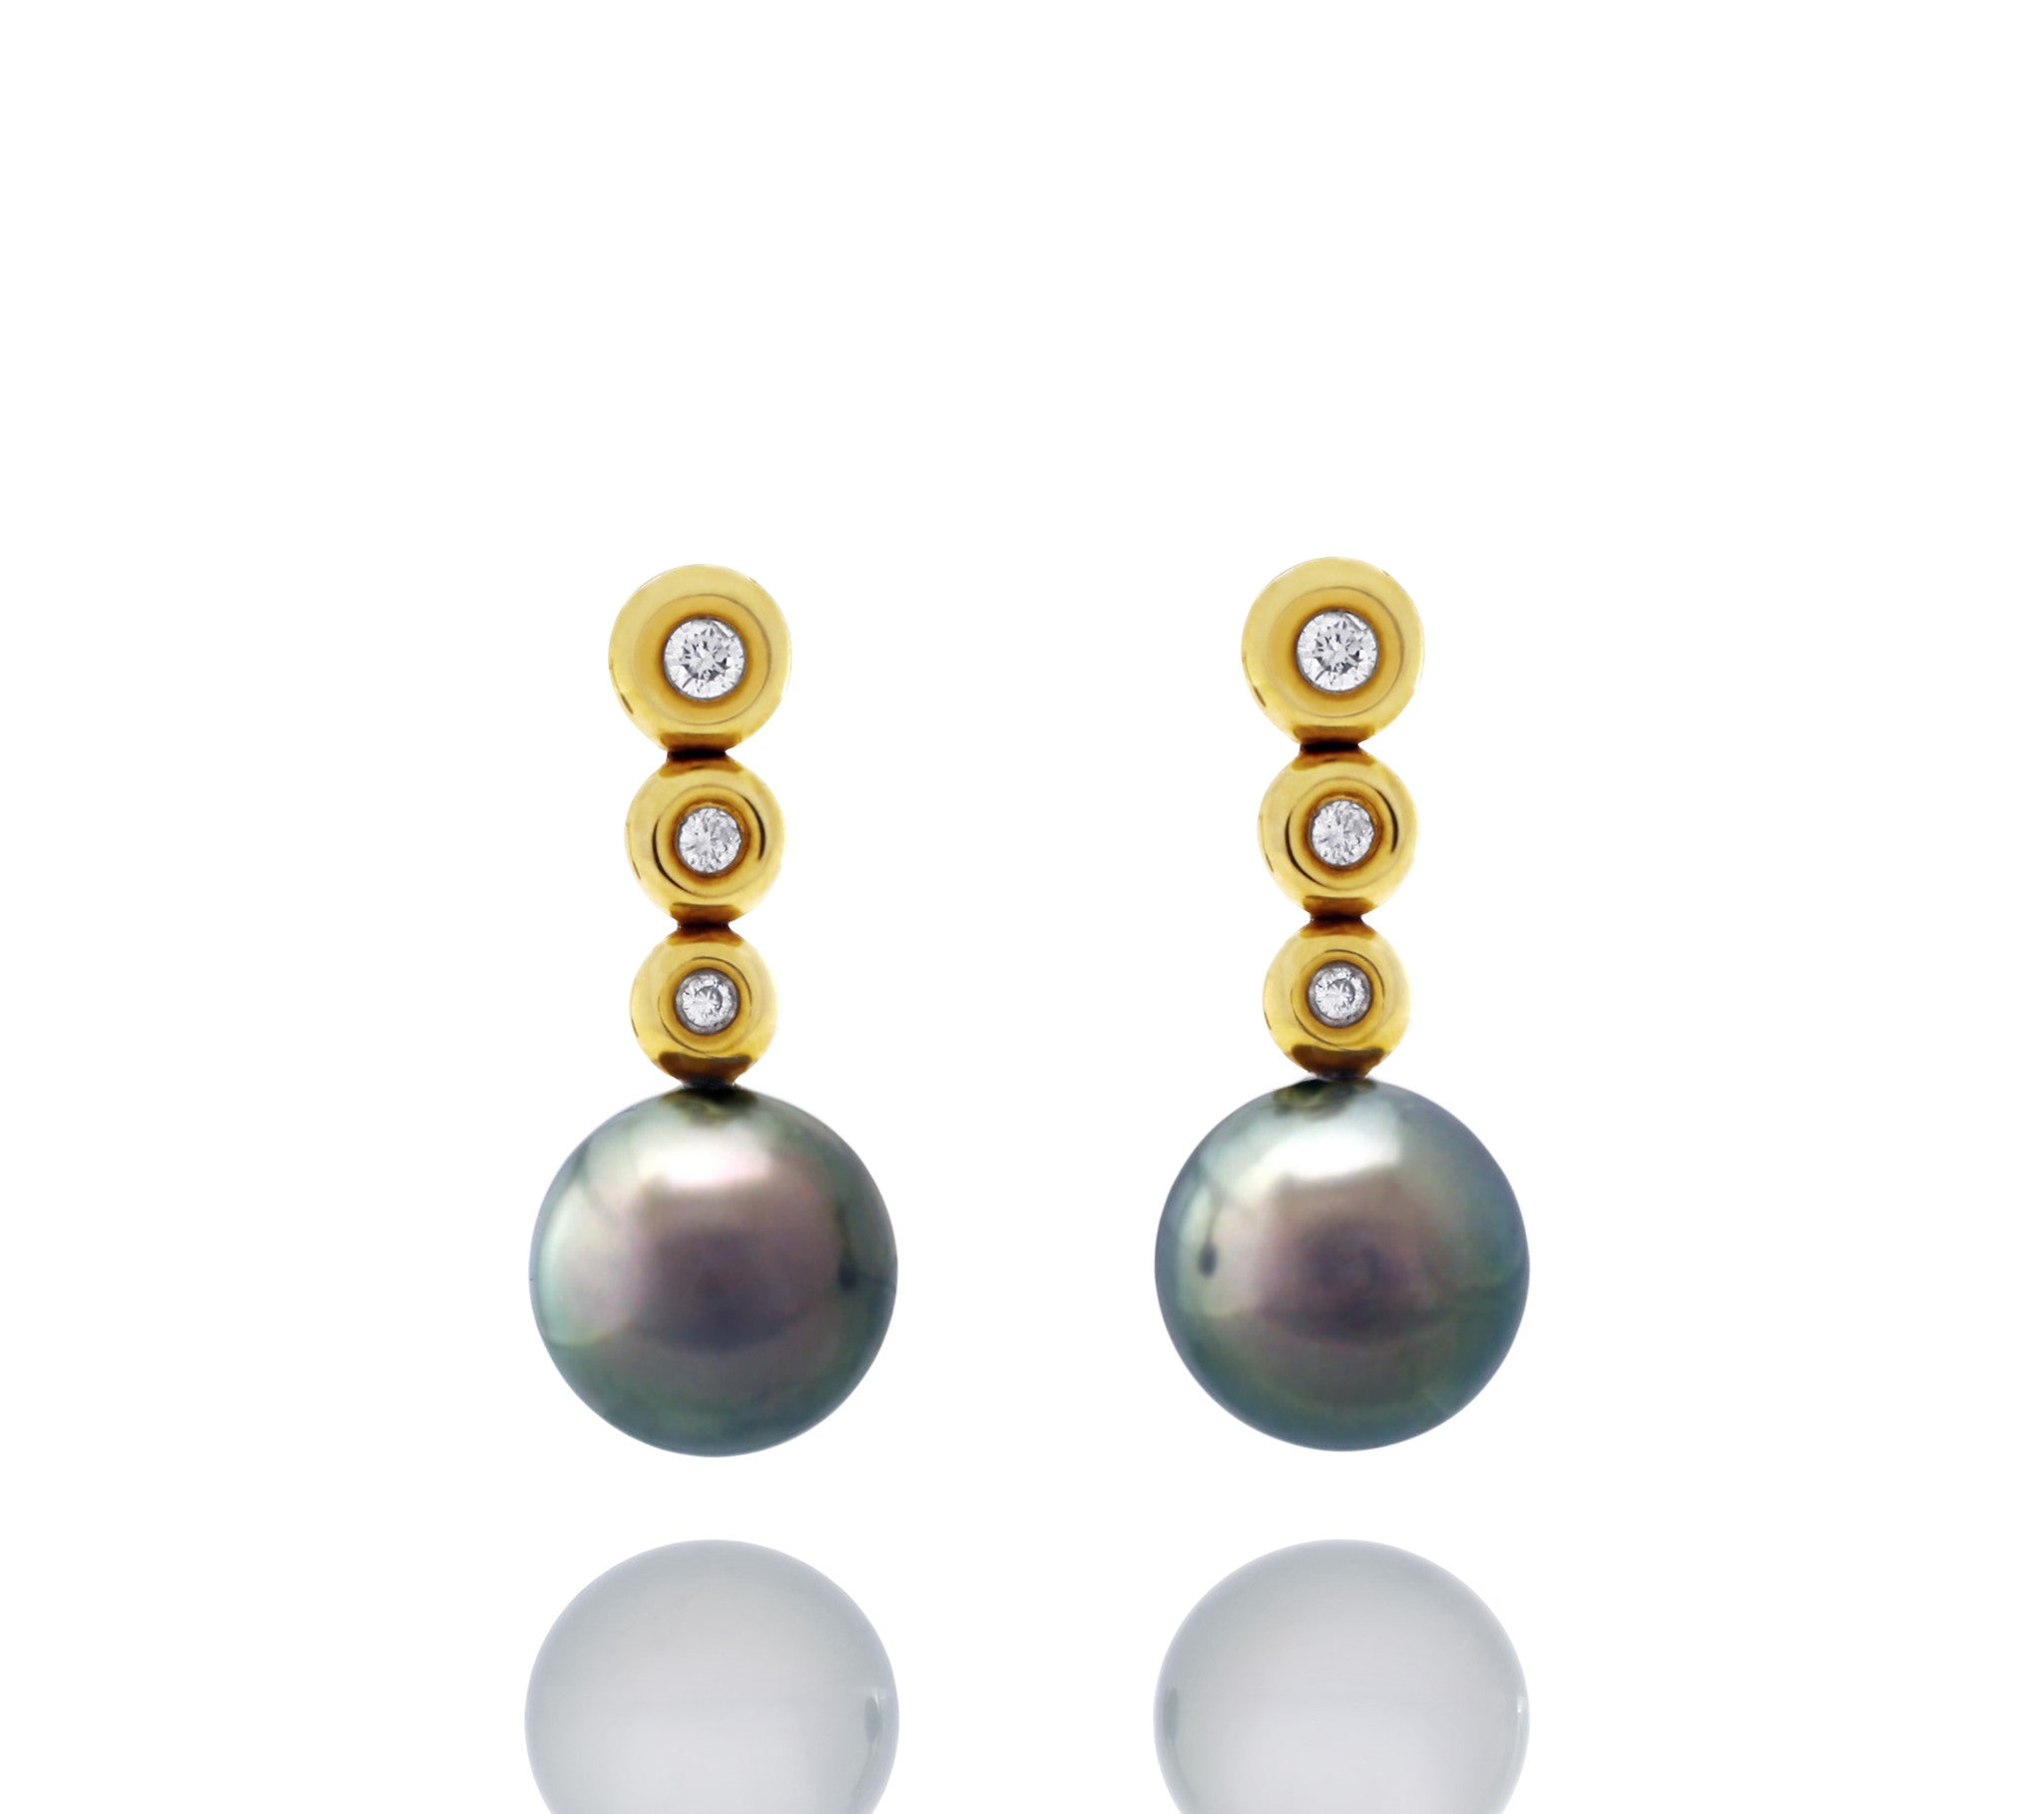 Tahitian pearl earrings 18k yellow gold with diamond - Circle of Life - EAYDPE00092